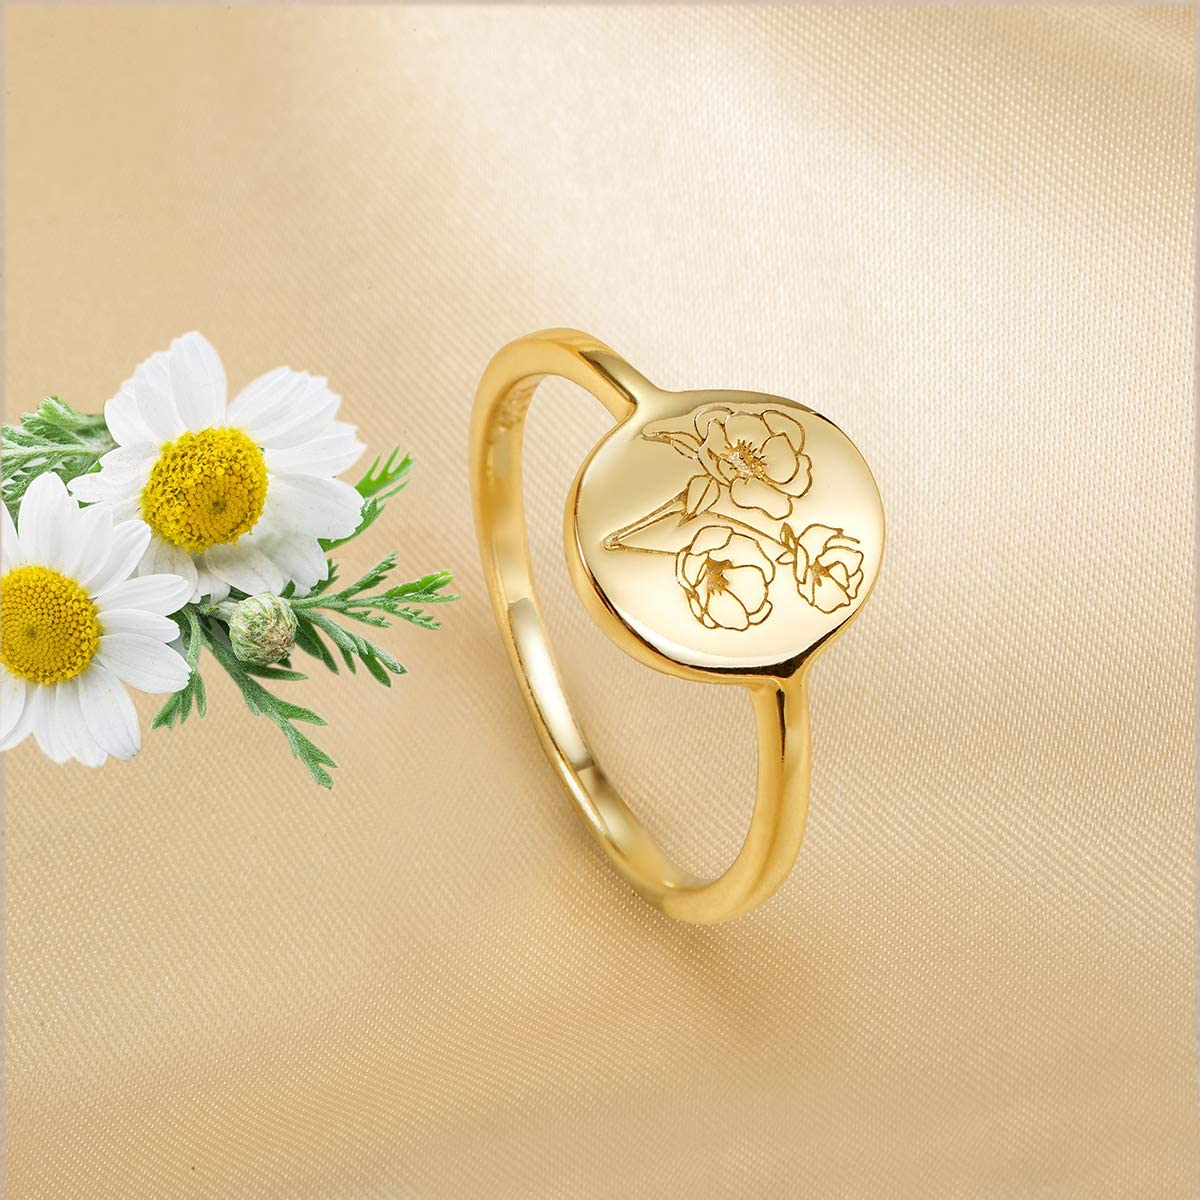 YeGieonr Handmade Flower Signet Ring Delicate Personalized Jewelry Gift for Women//Girls 18K Gold Ring-Minimalistic Statement Ring with Botanical Engraved